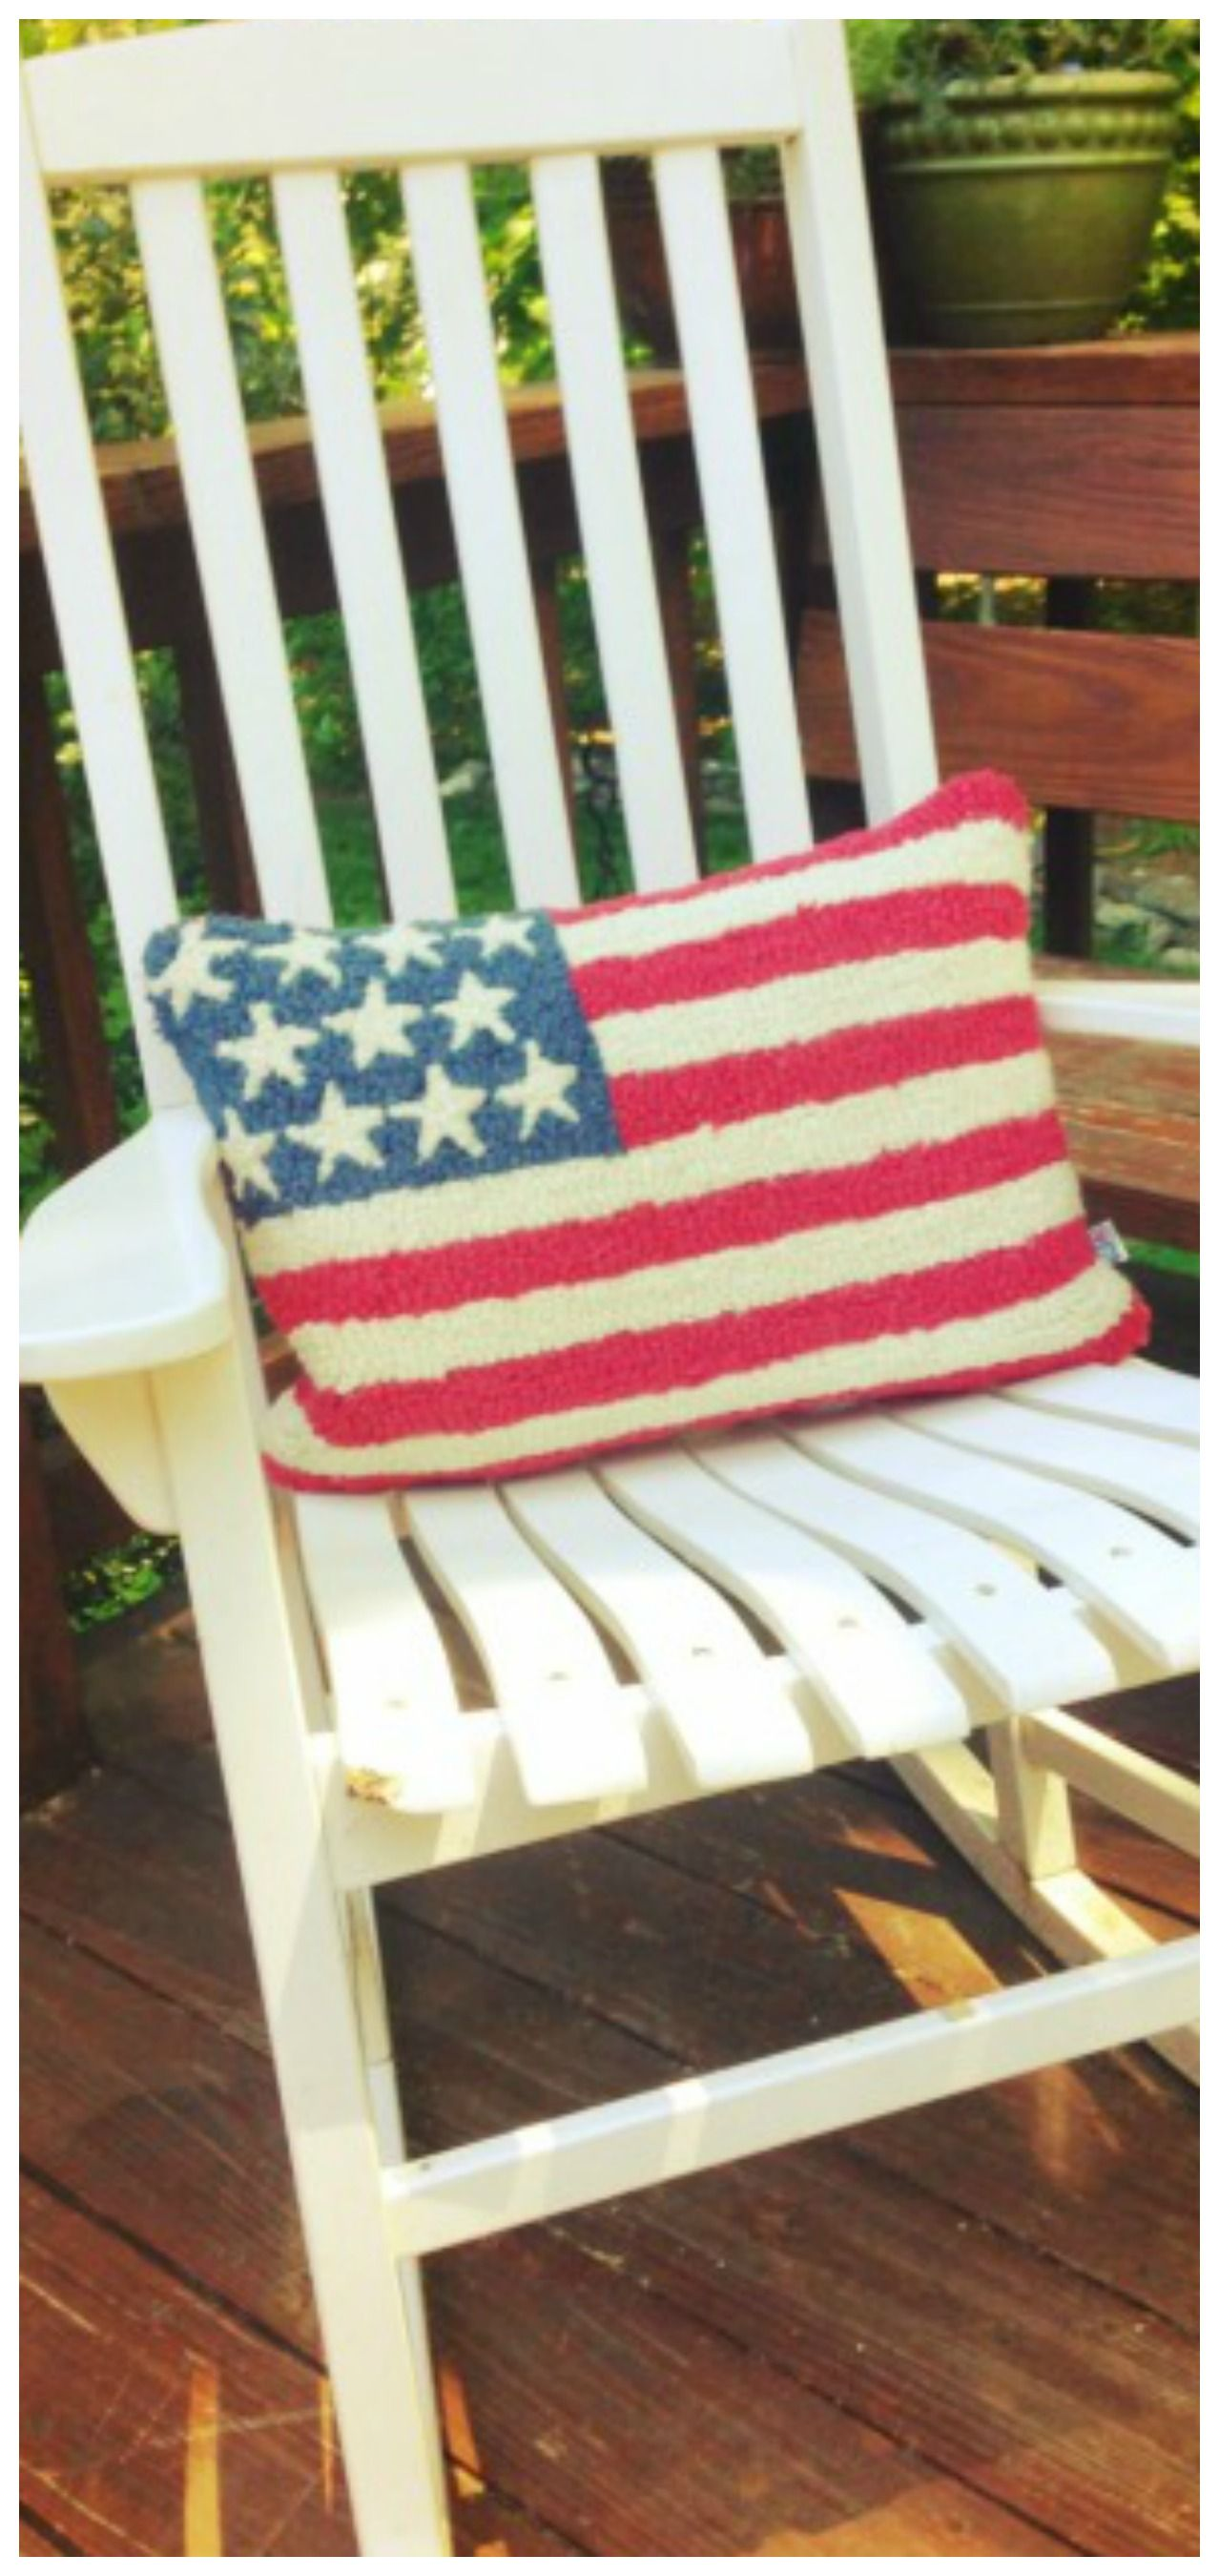 Onland Outdoor Furniture An Entry From The Sweet Simple Life In 2019 Patriotic Cottage On